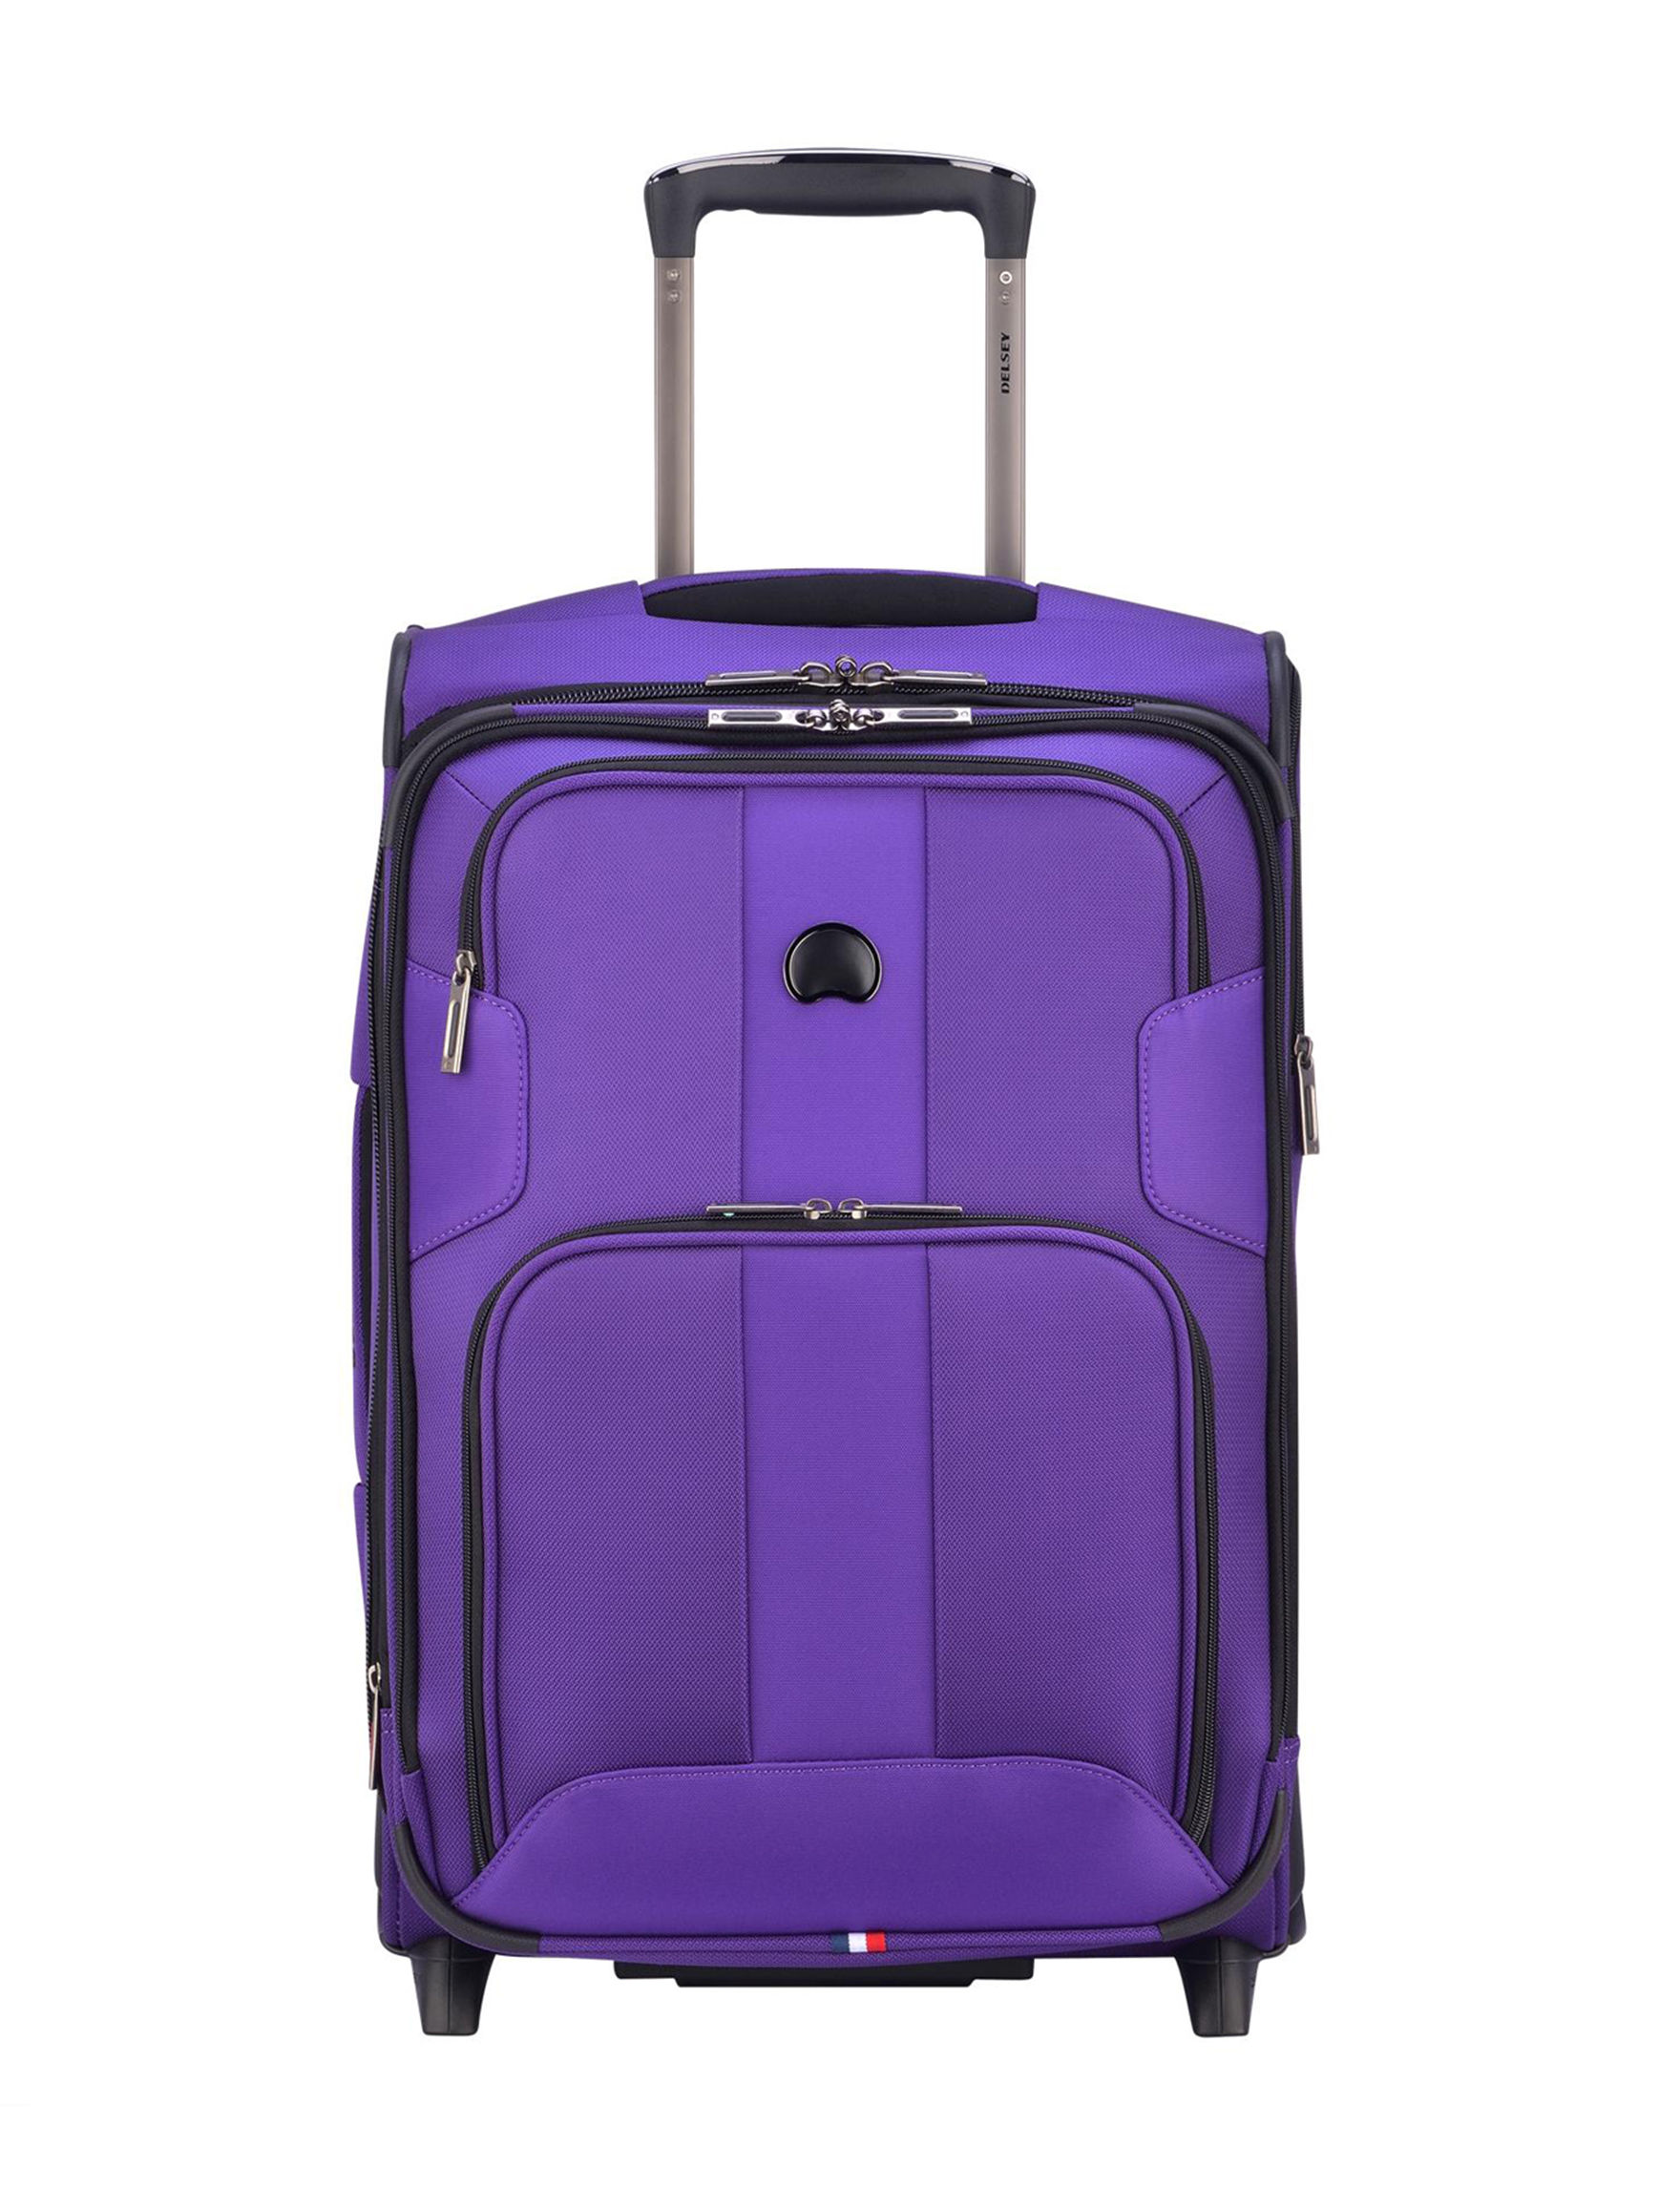 Delsey Purple Carry On Luggage